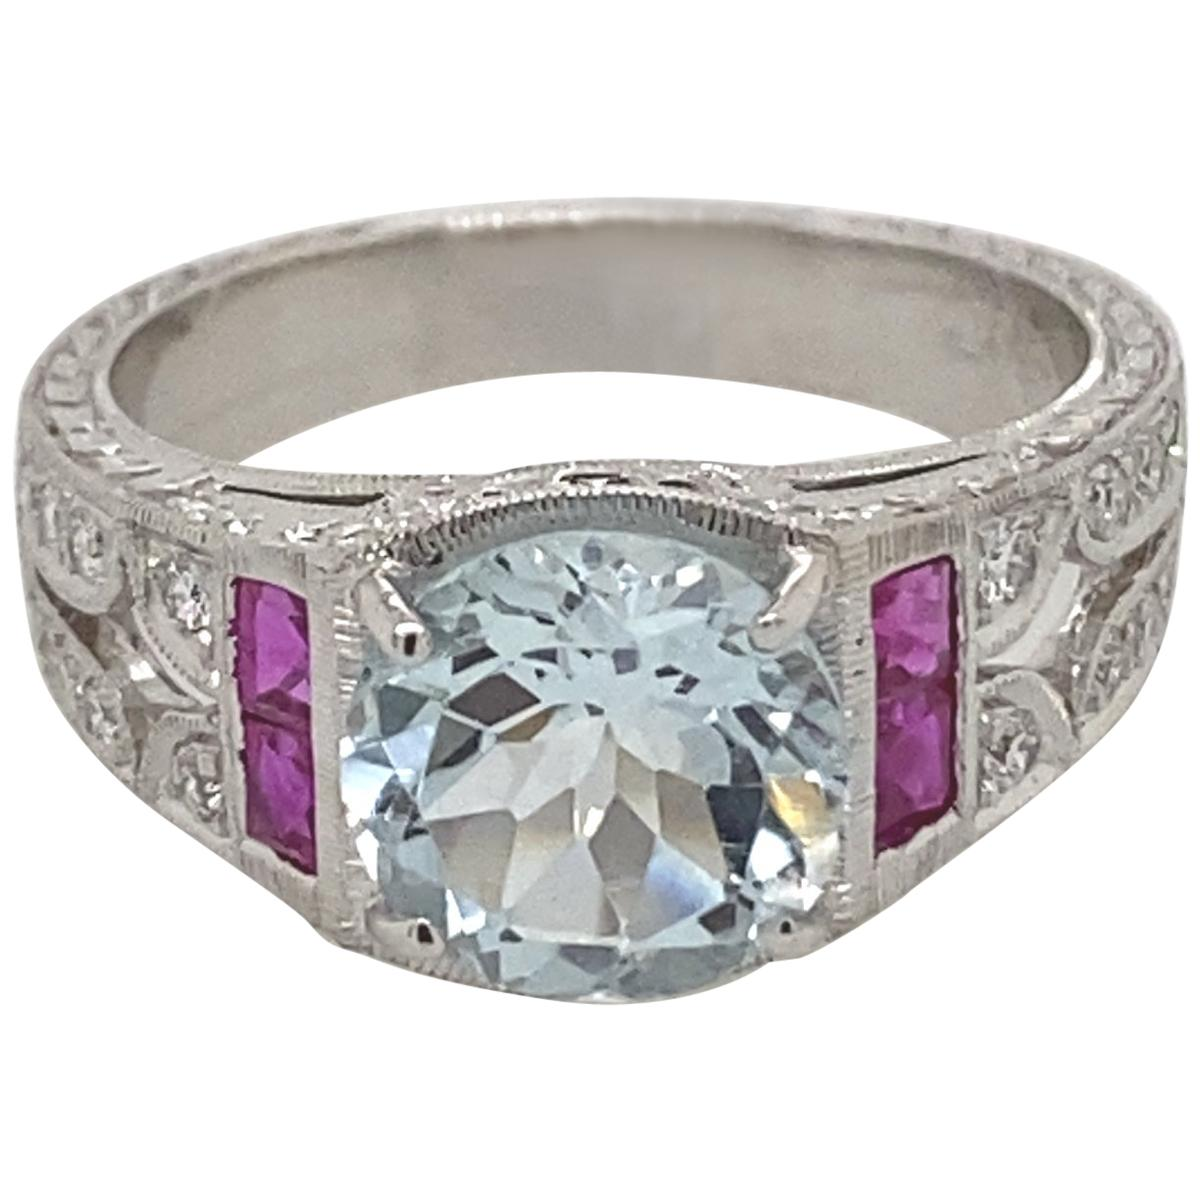 Art Deco Inspired 2 Carat Aquamarine, Ruby, and Diamond Ring 18 Karat White Gold